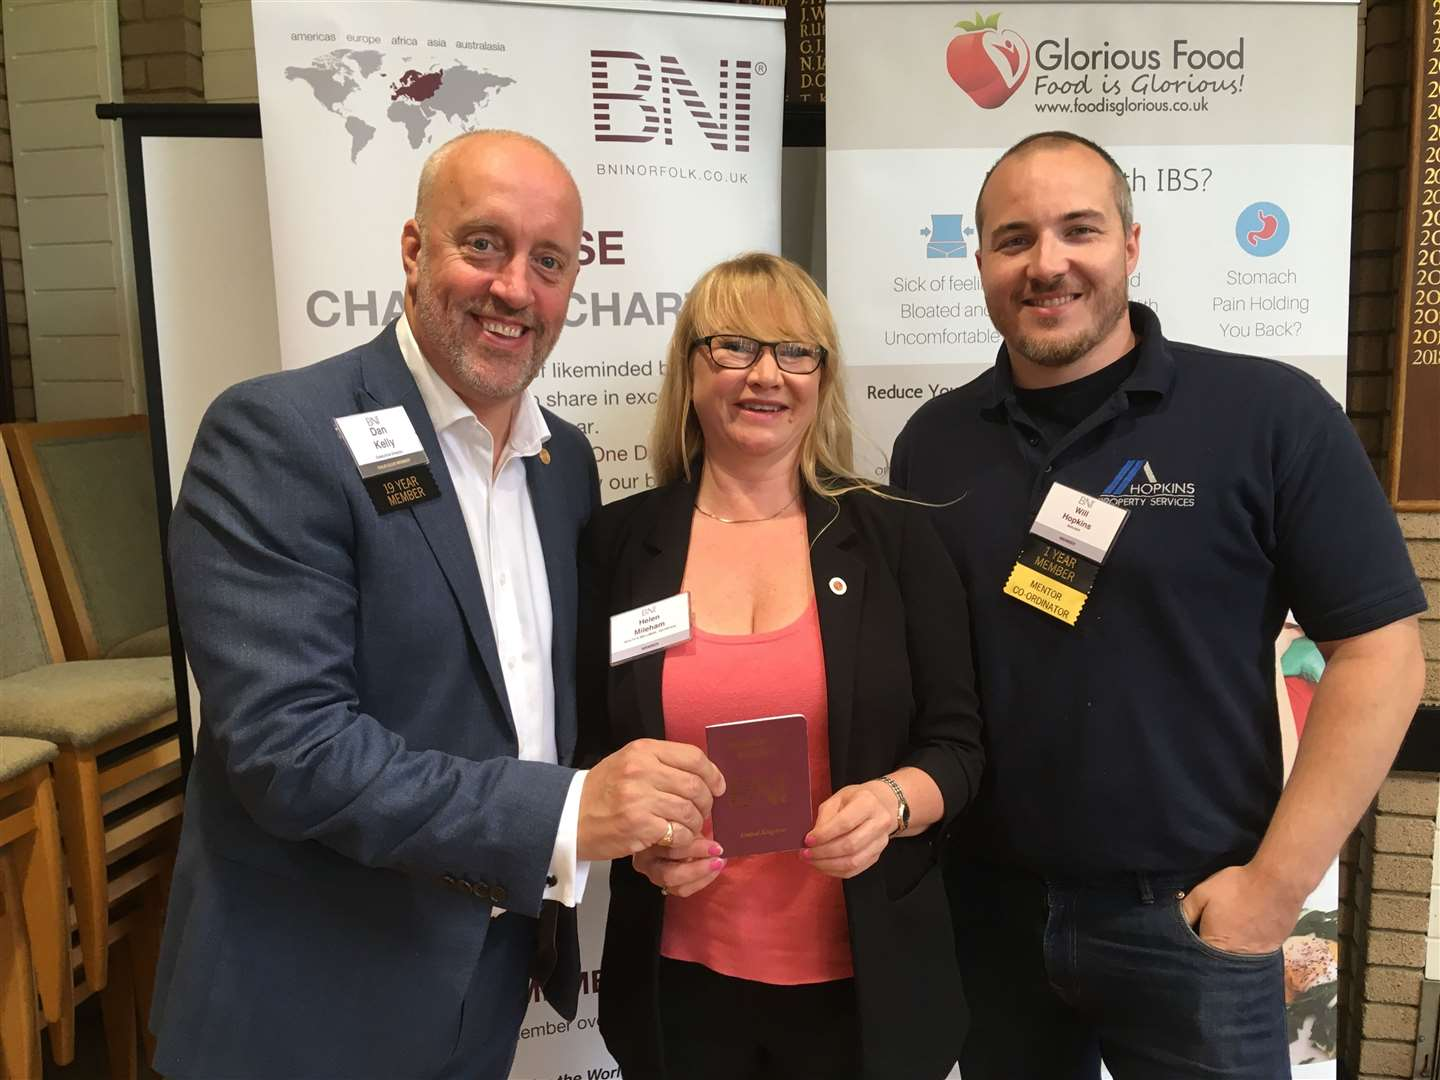 Pictured, from left, are Dan Kelly, BNI Norfolk Executive Director, Helen Mileham, of Glorious Food, and Will Hopkins, of Hopkins Property & BNI Passport Mentor (14273342)